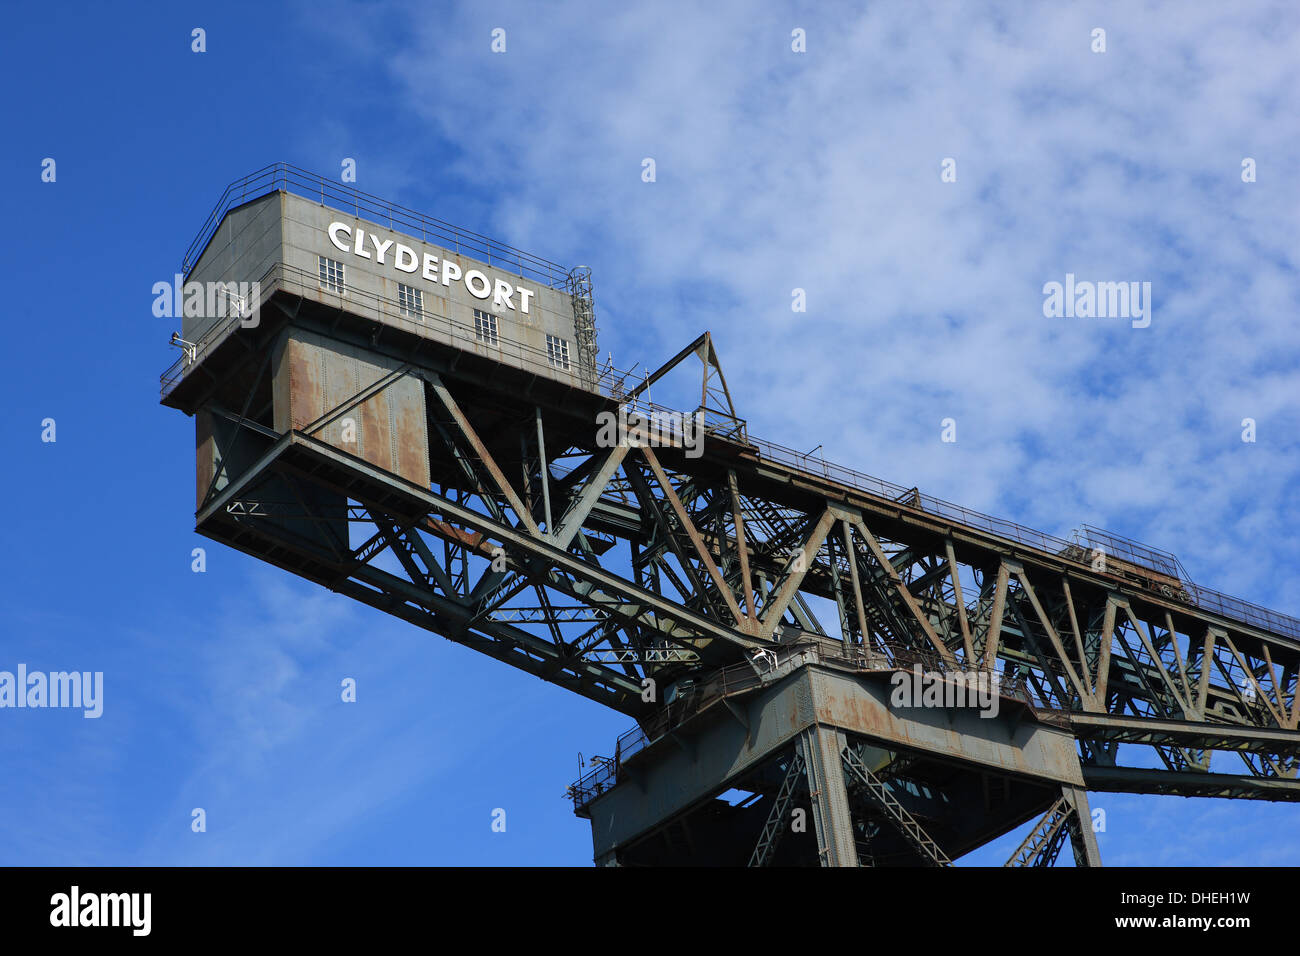 Finnieston Crane or Stobcross Crane now disued but a landmark of Scottish engineering, north bank of the River Clyde in Glasgow - Stock Image